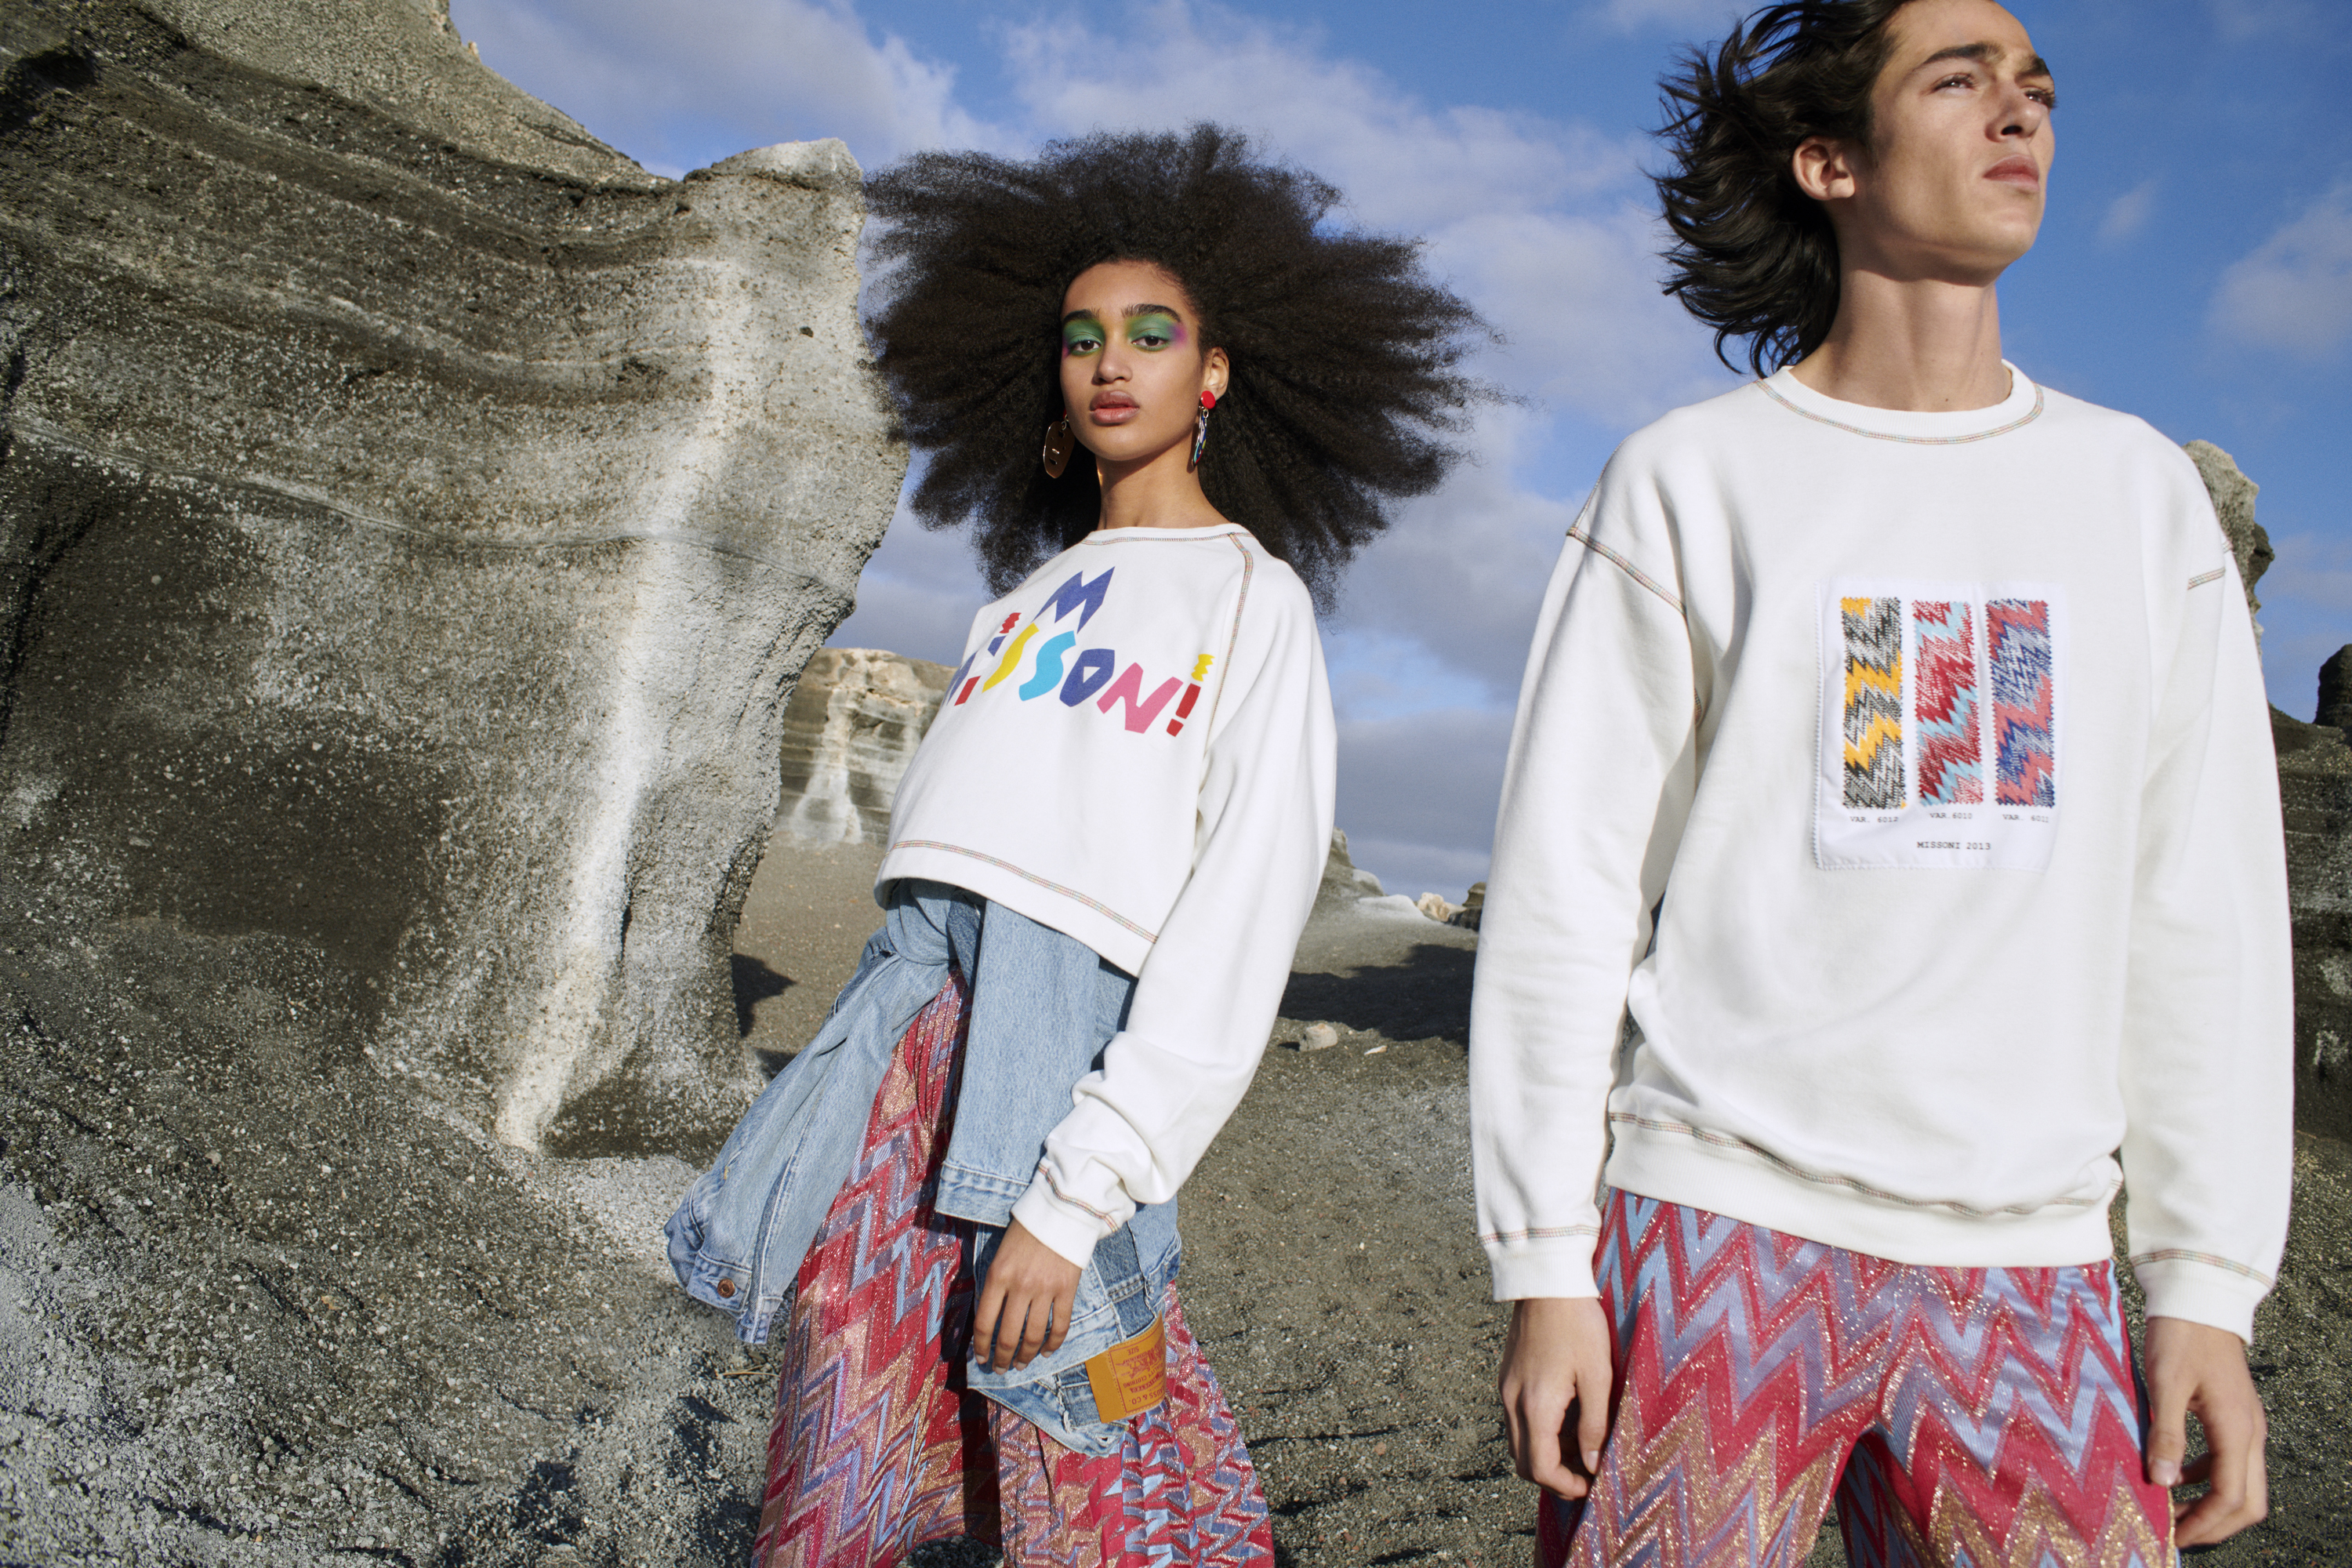 M Missoni x YOOX capsule collection